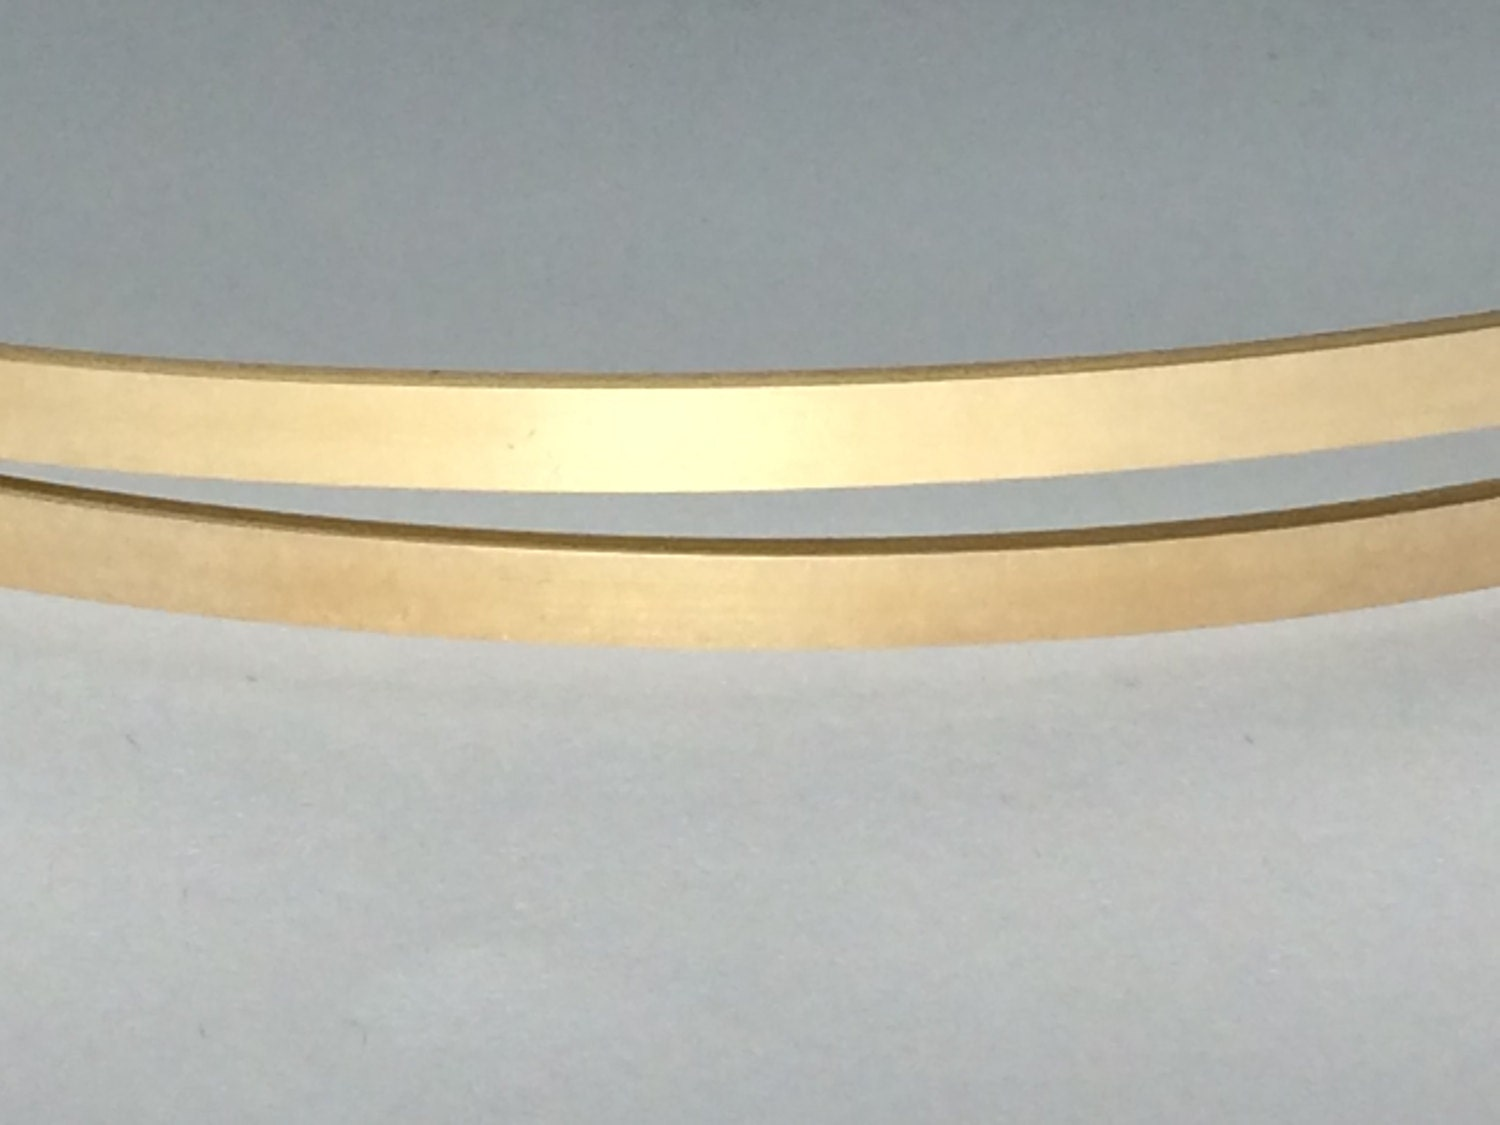 14kt yellow gold fill flat stock, flat wire, rectangle wire, sizing ...